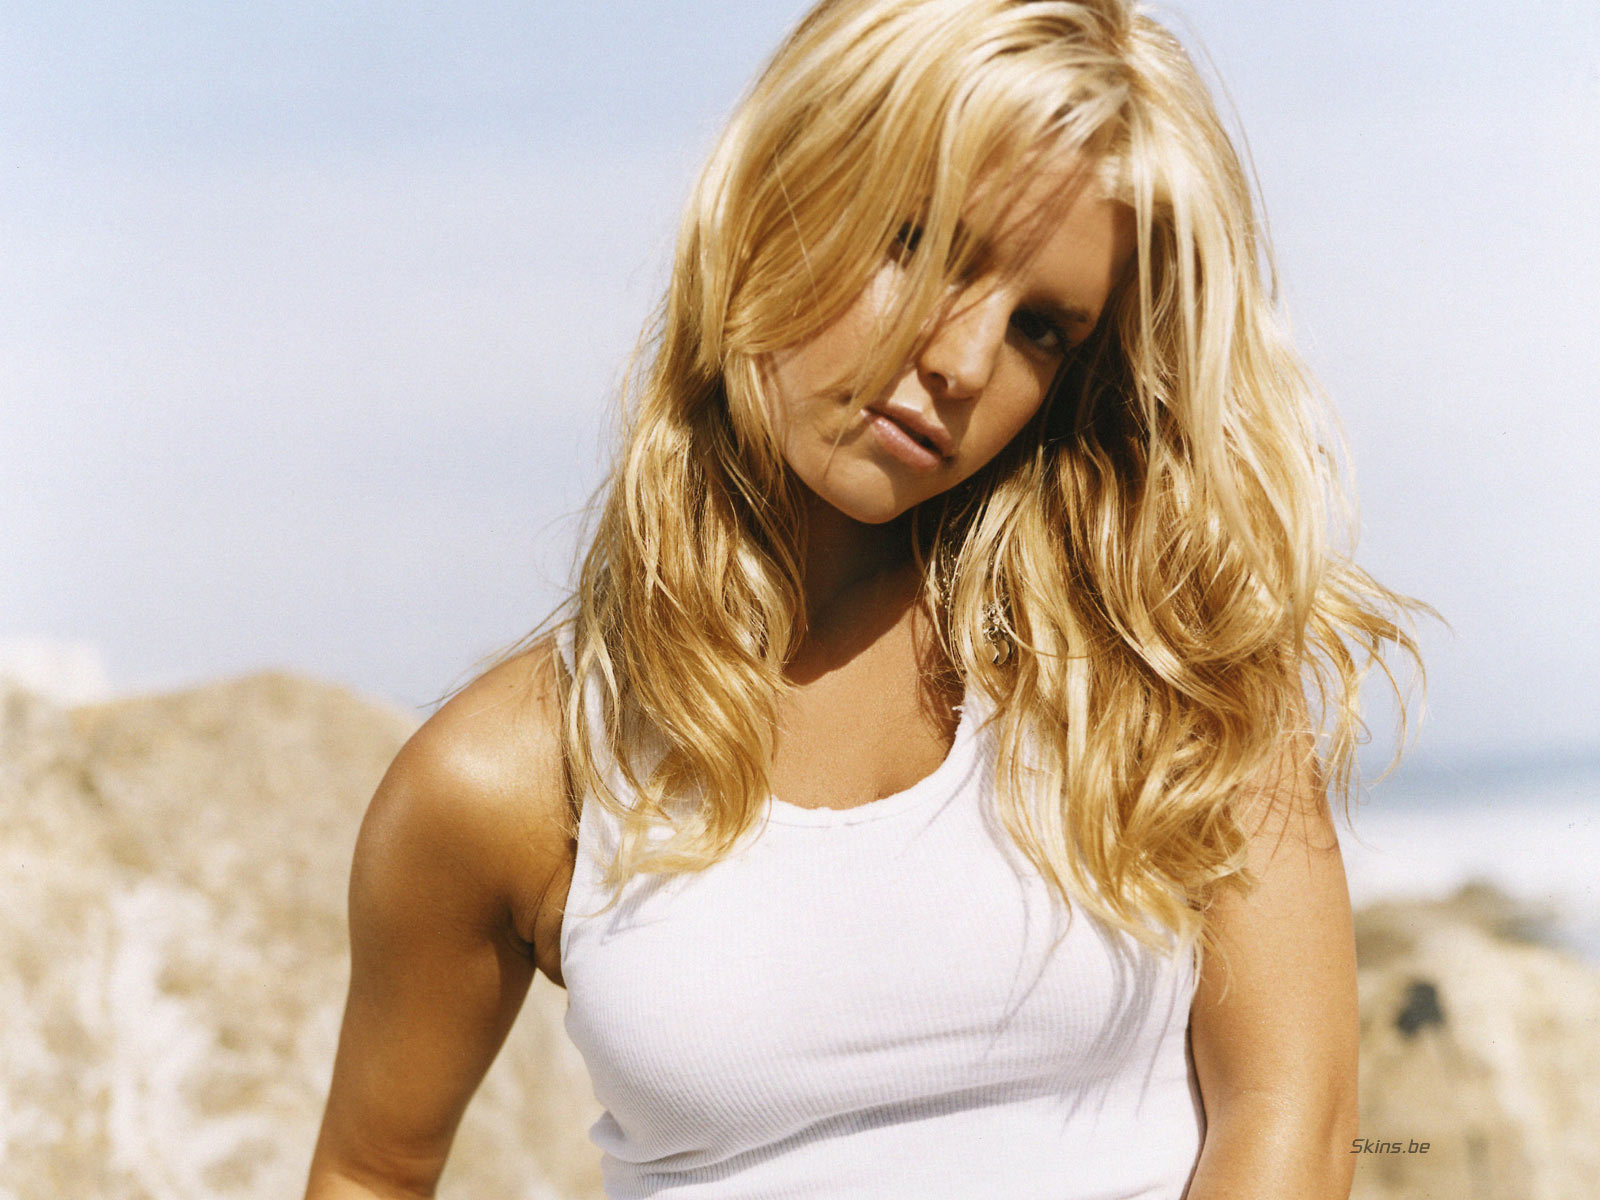 Download High Quality Jessica Simpson Wallpaper Celebrities Female